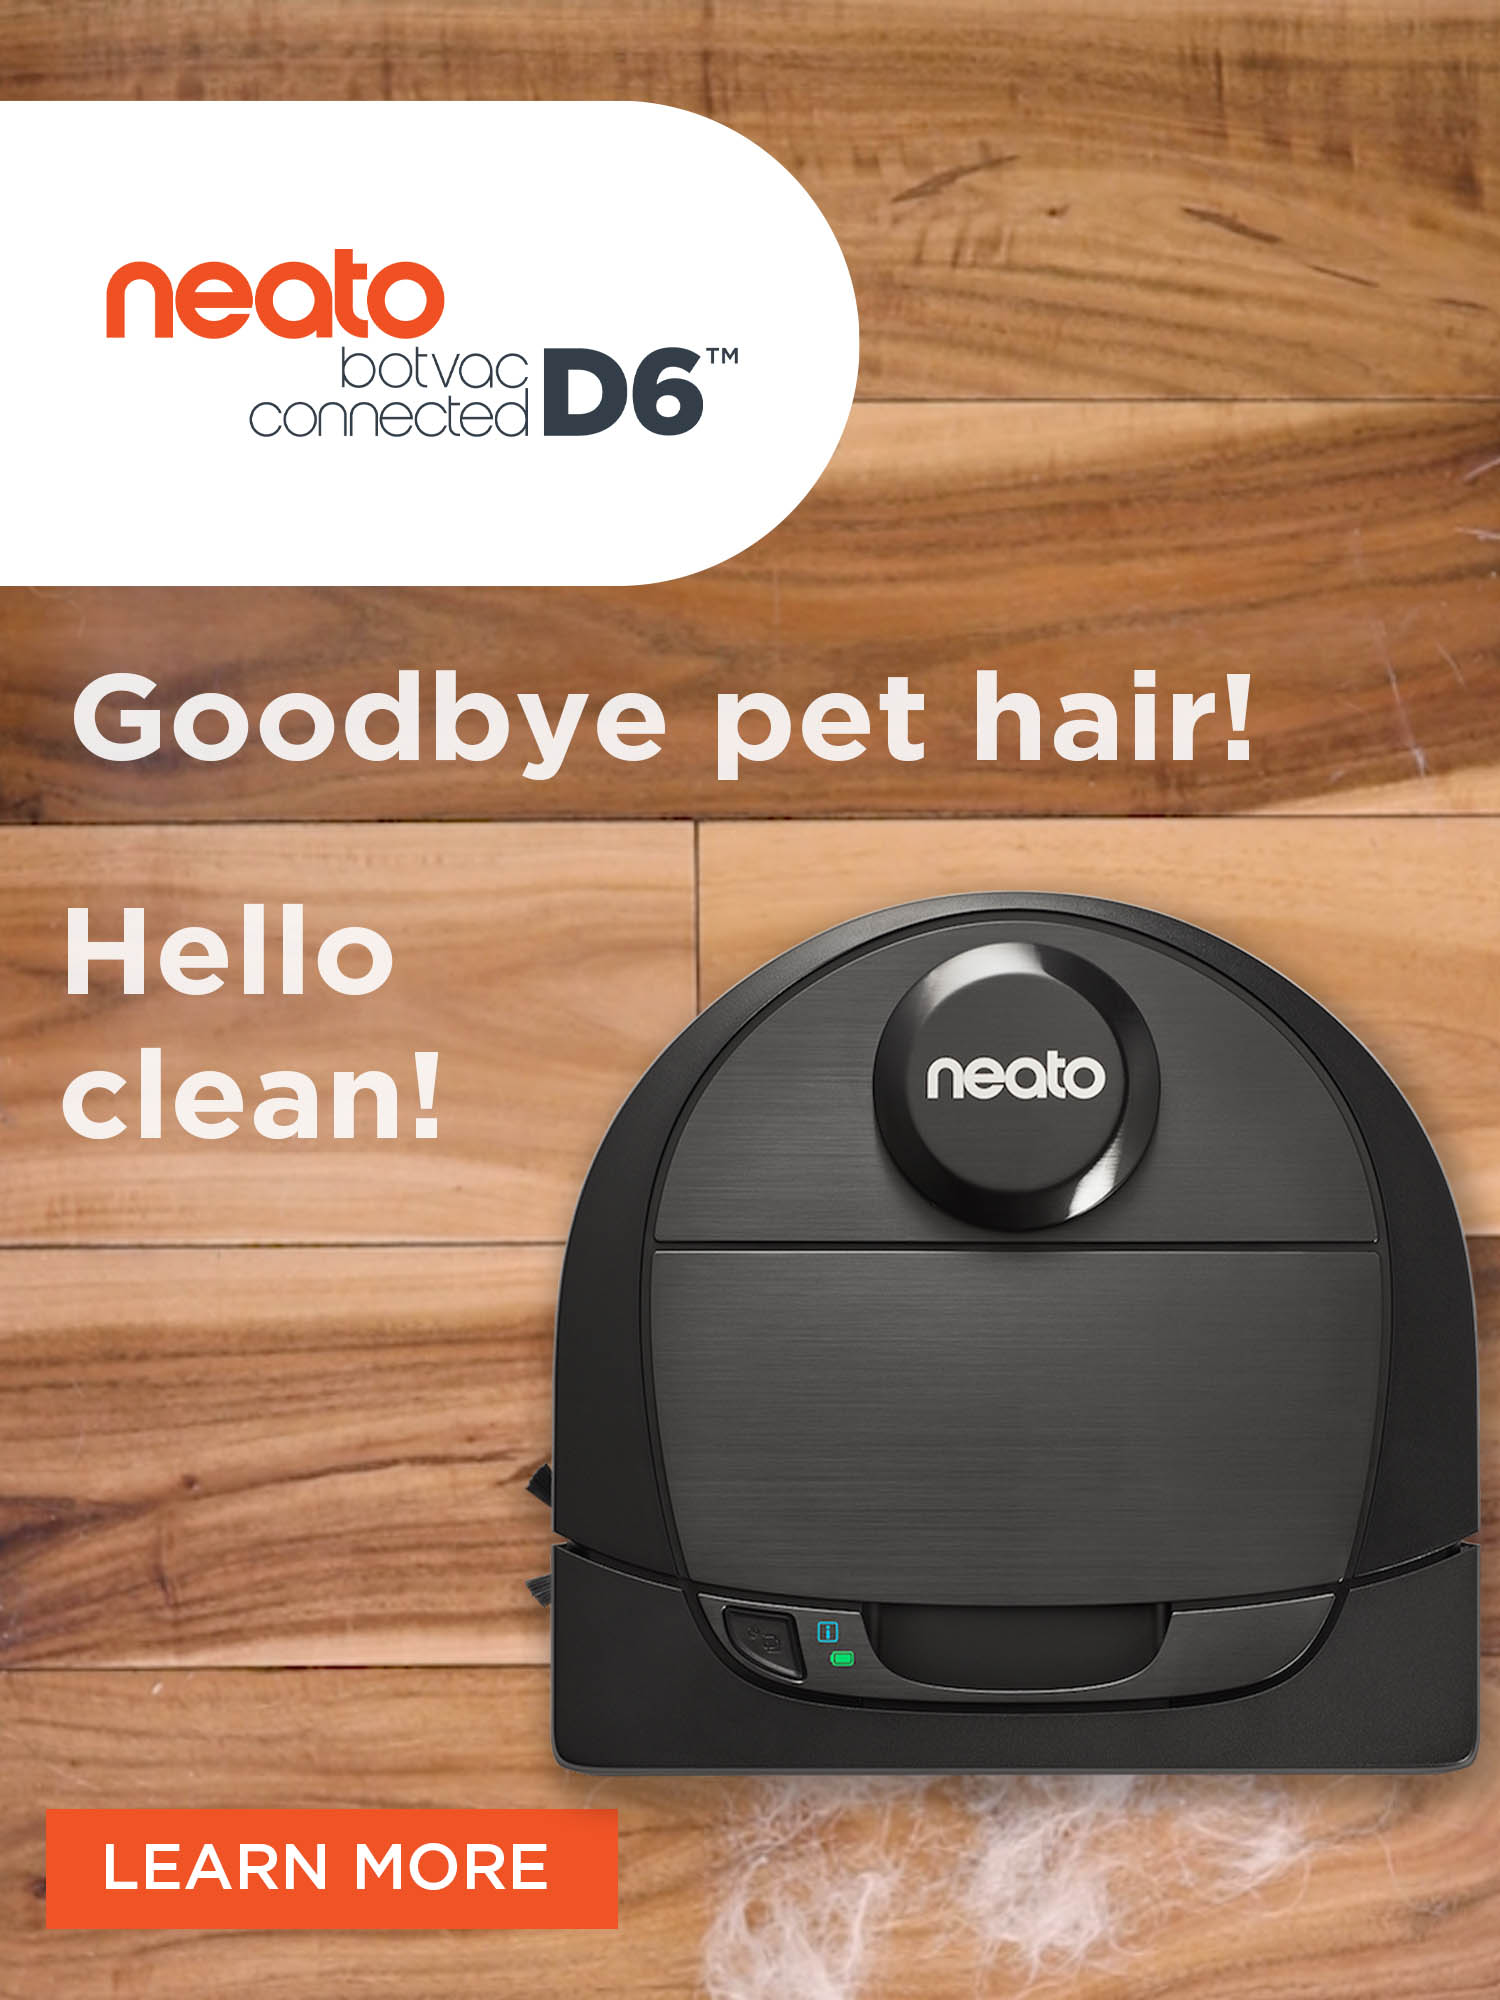 Neato Botvac D6 Connected, D-Shape Design. Cleans Best in Corners